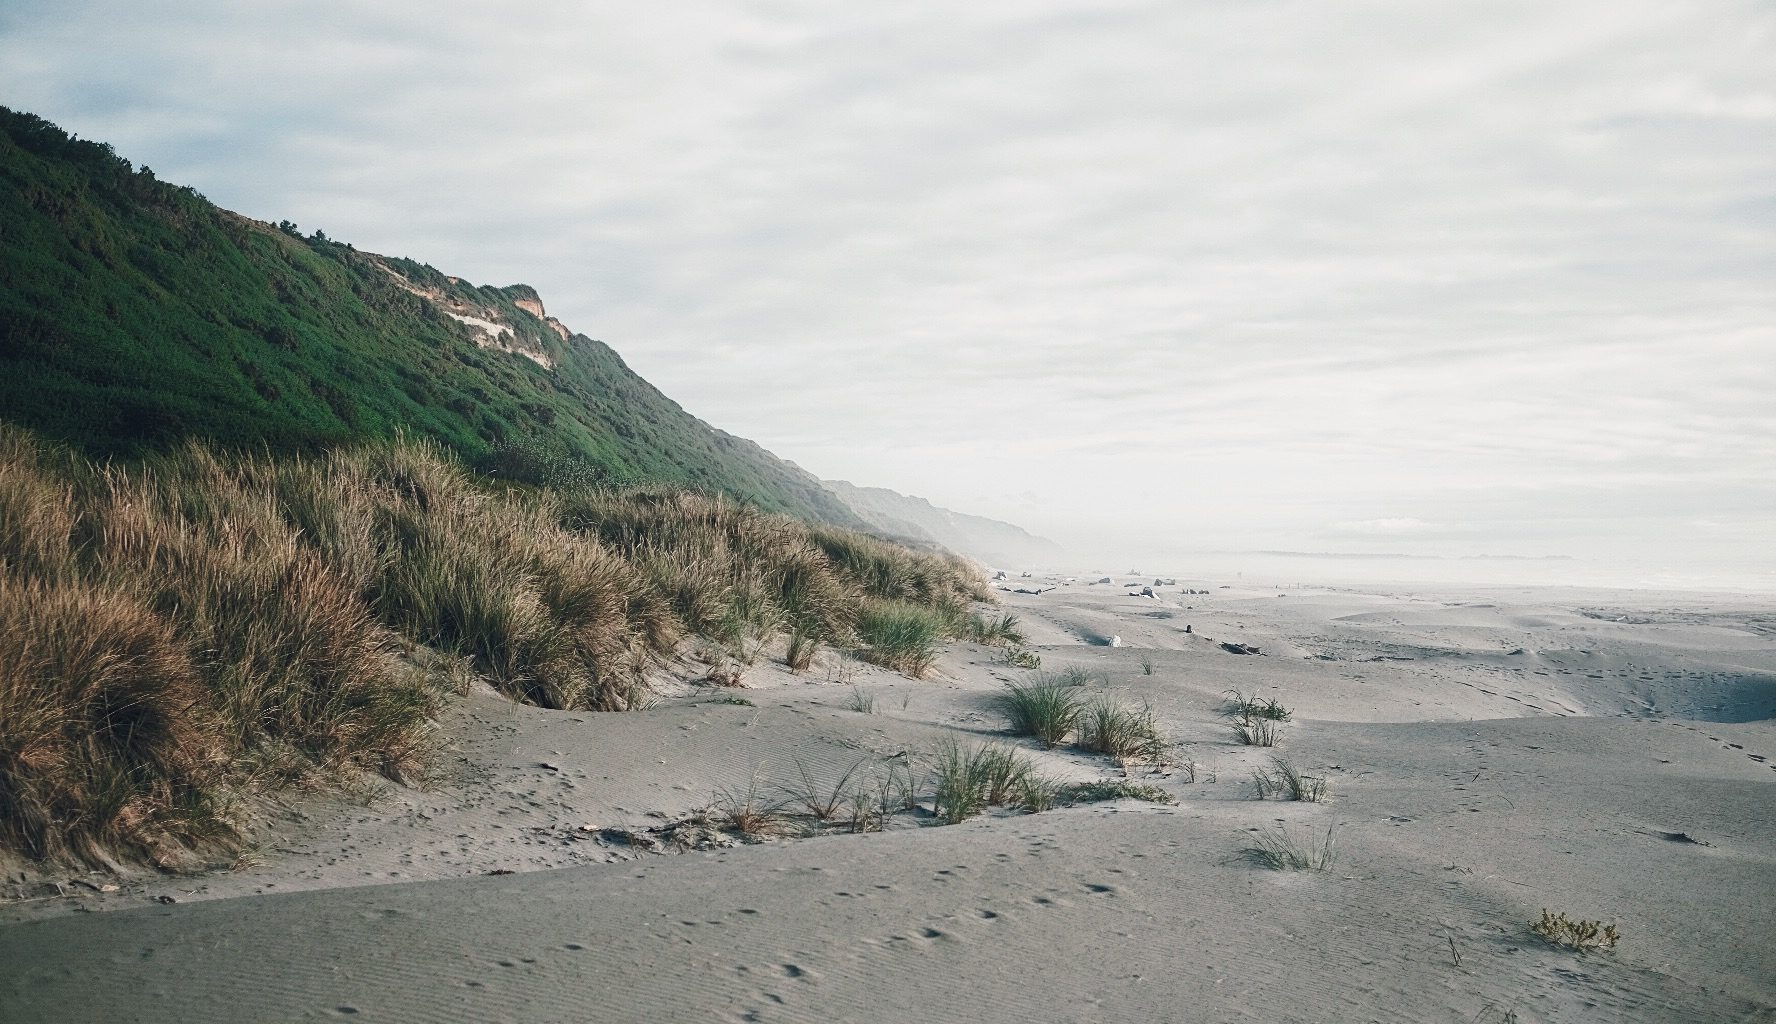 Overland camping the Pacific Northwest | Whiskey Run Beach, Oregon